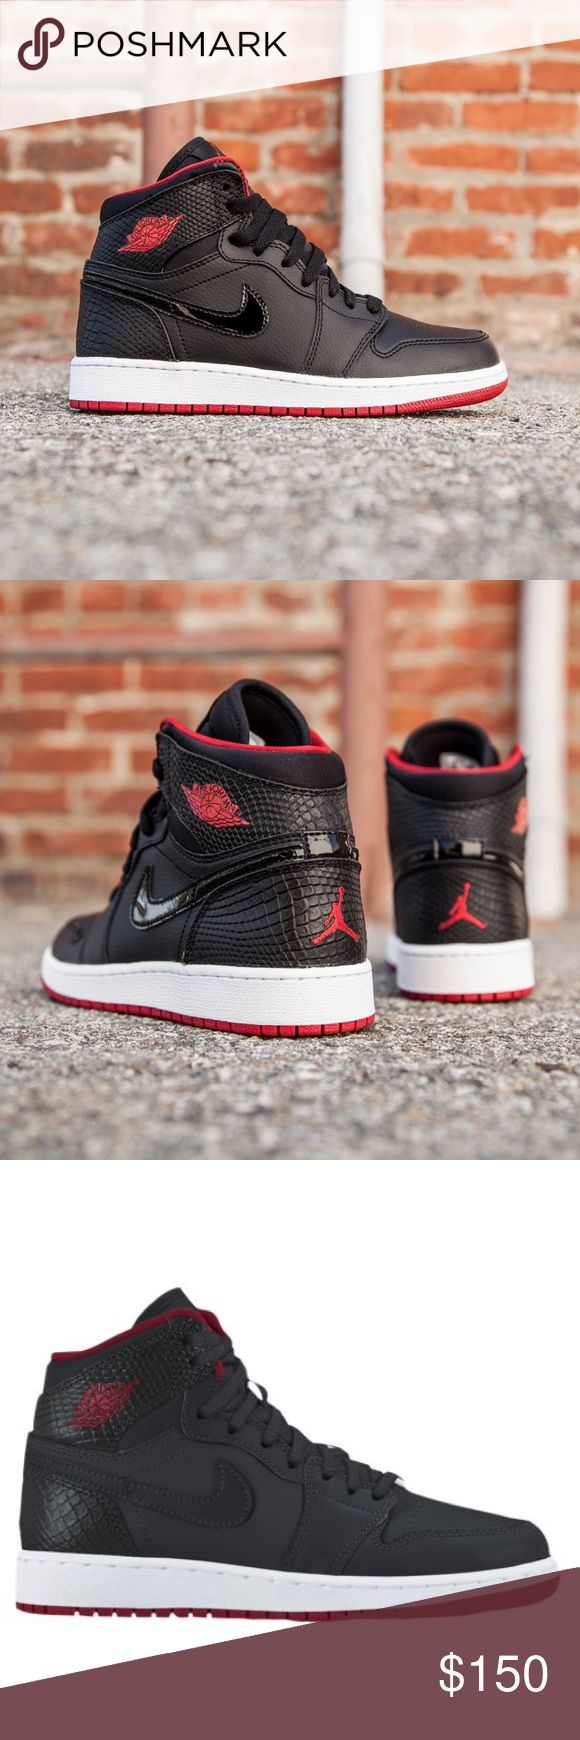 ❤️AIR JORDAN RETRO 1 NIKE HIGH BLACK RED SHOES Brand new with box but no top lid on the box. 100 % authentic. Size 6 youth BG (please look at sizing chart) fits women's 7.5 Nike Shoes Sneakers